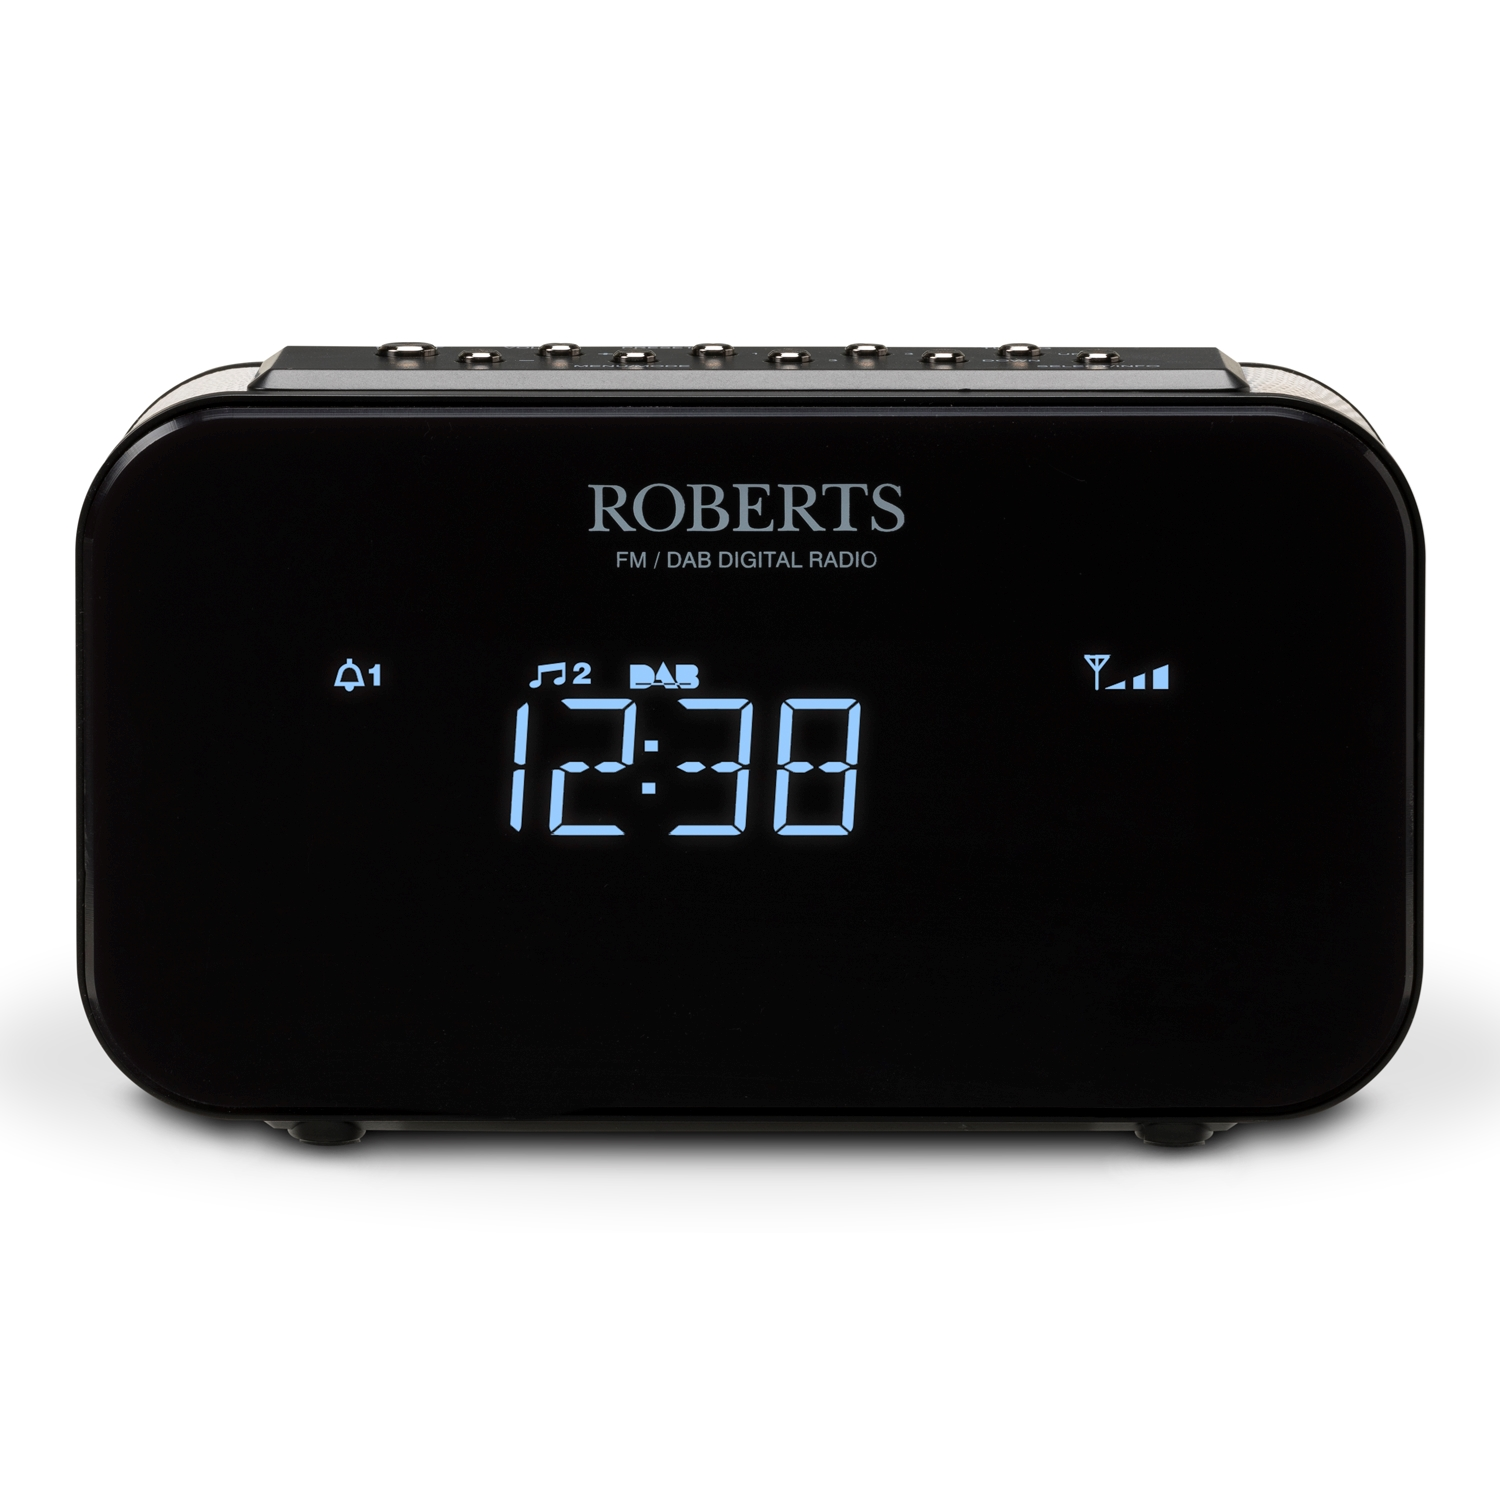 roberts clock radio ortus 1 dab dab fm radio with any button snooze black new ebay. Black Bedroom Furniture Sets. Home Design Ideas